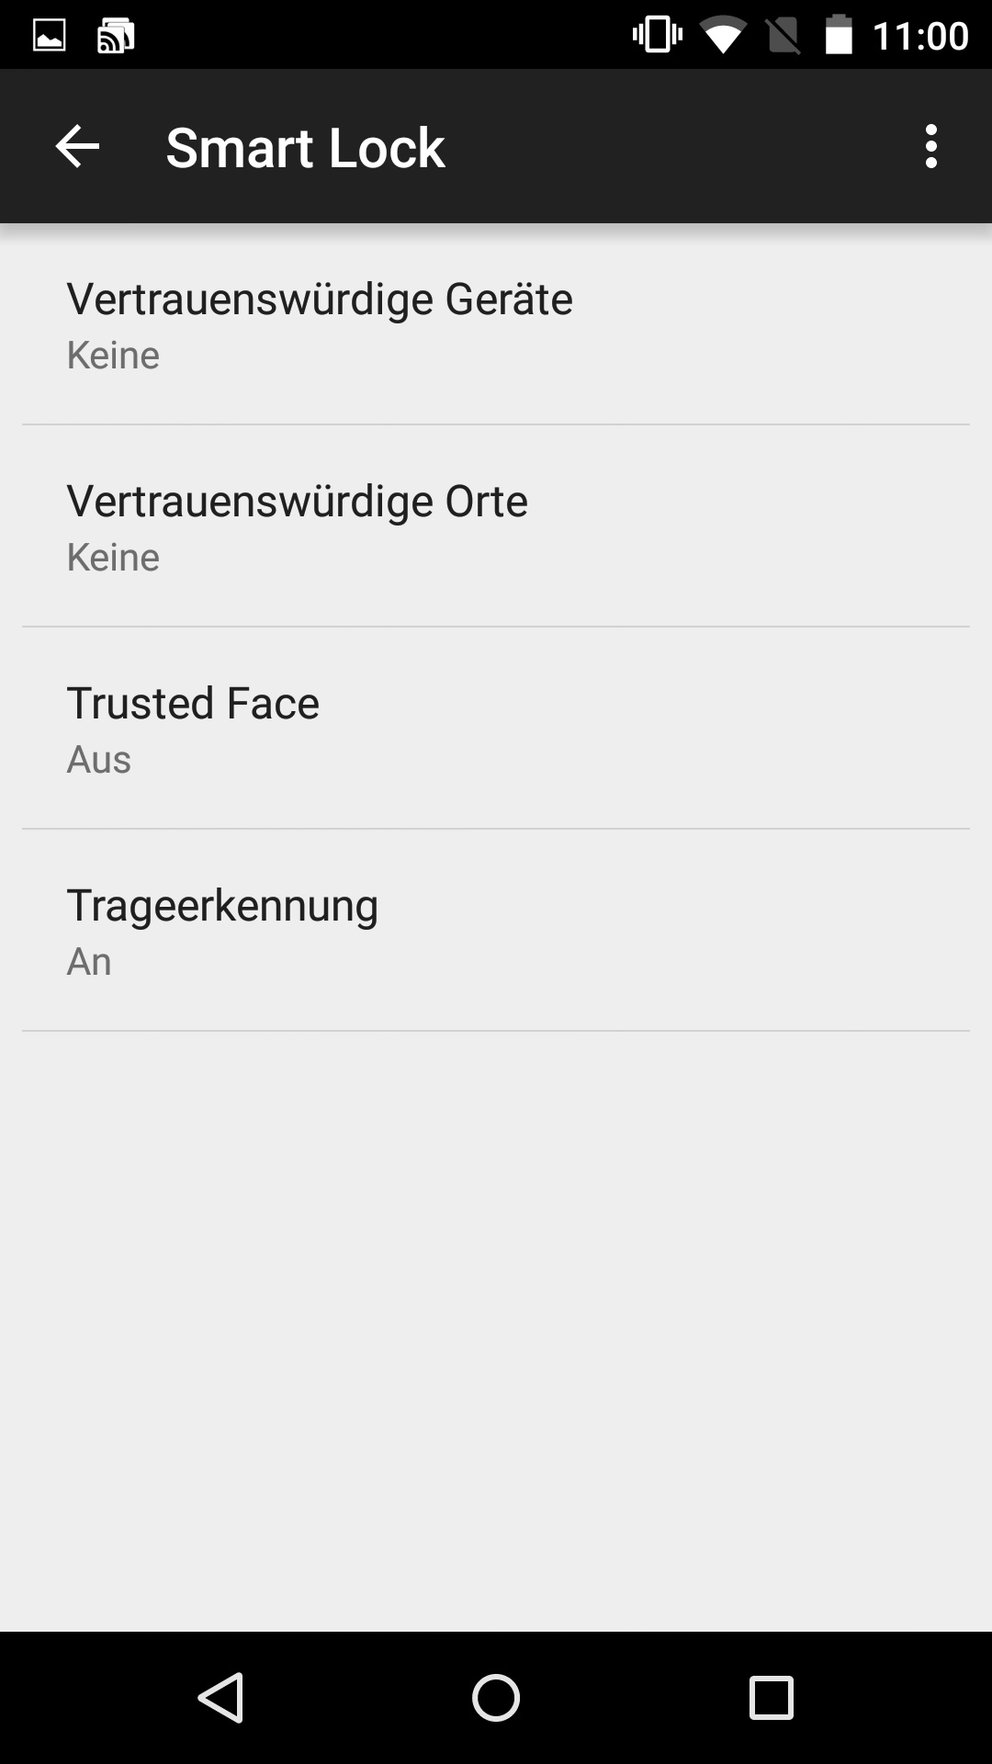 android-smart-lock-trageerkennung-1